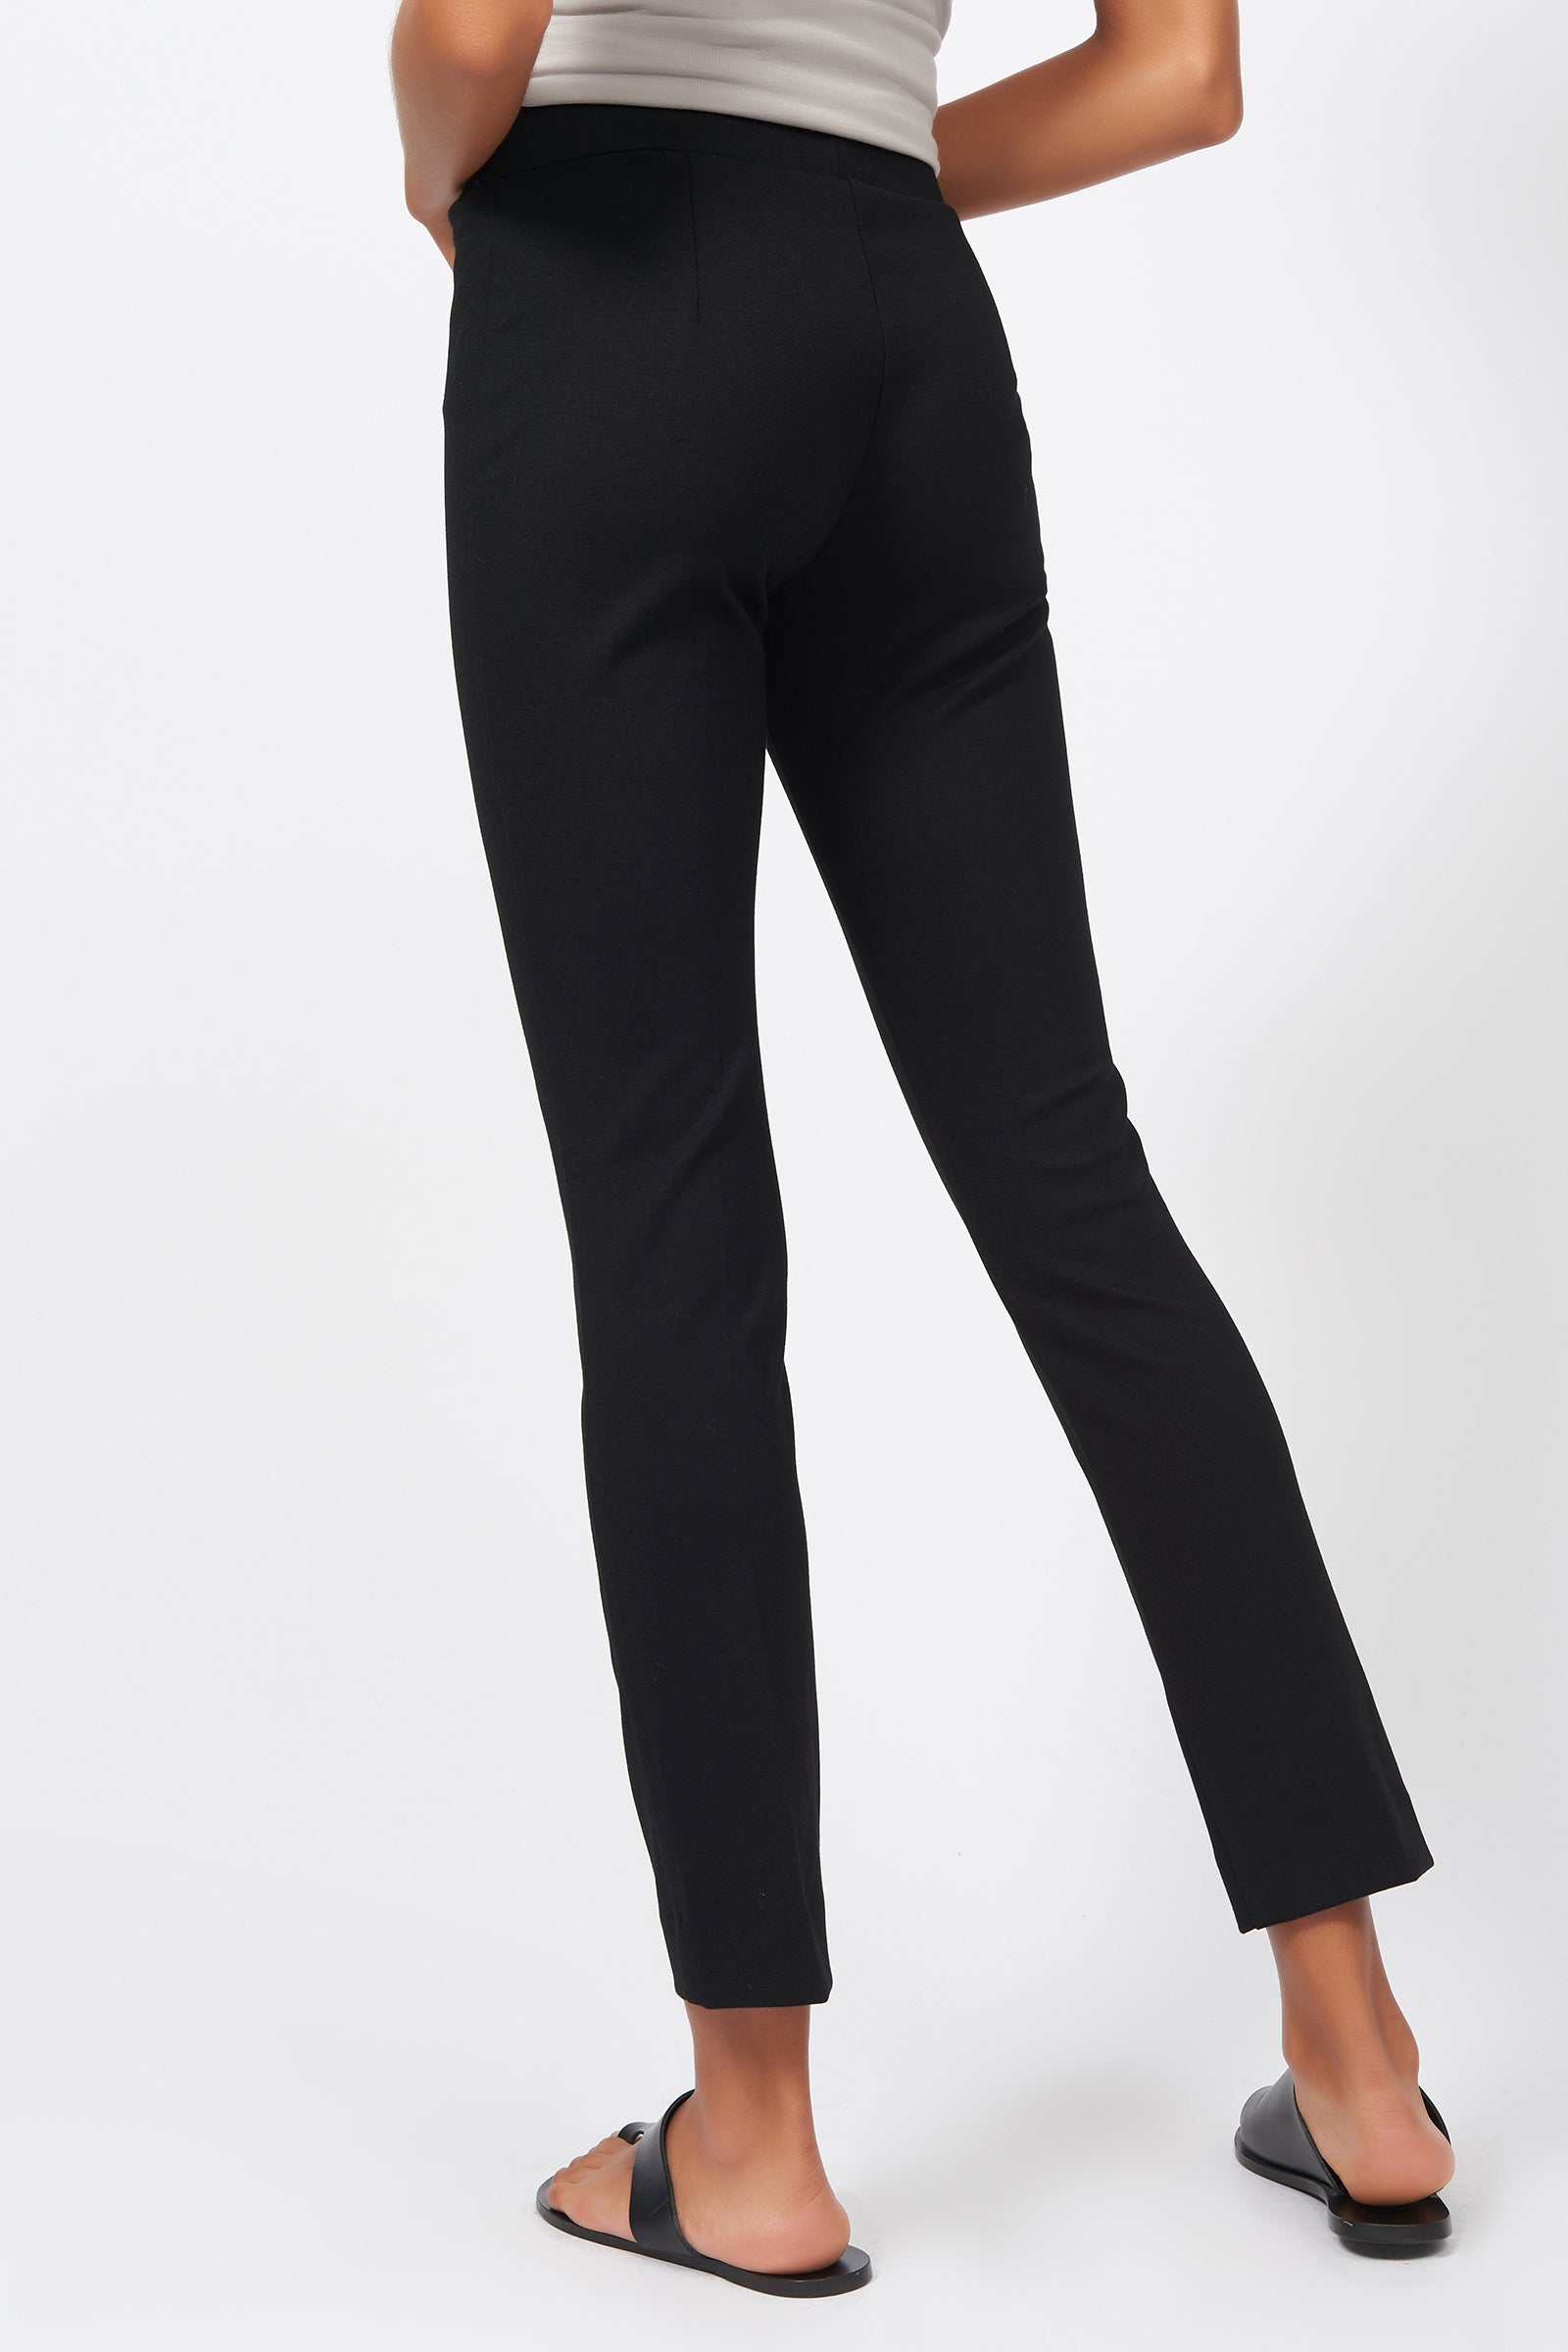 Kal Rieman Pintuck Ponte Ankle Pant in Black on Model Back View